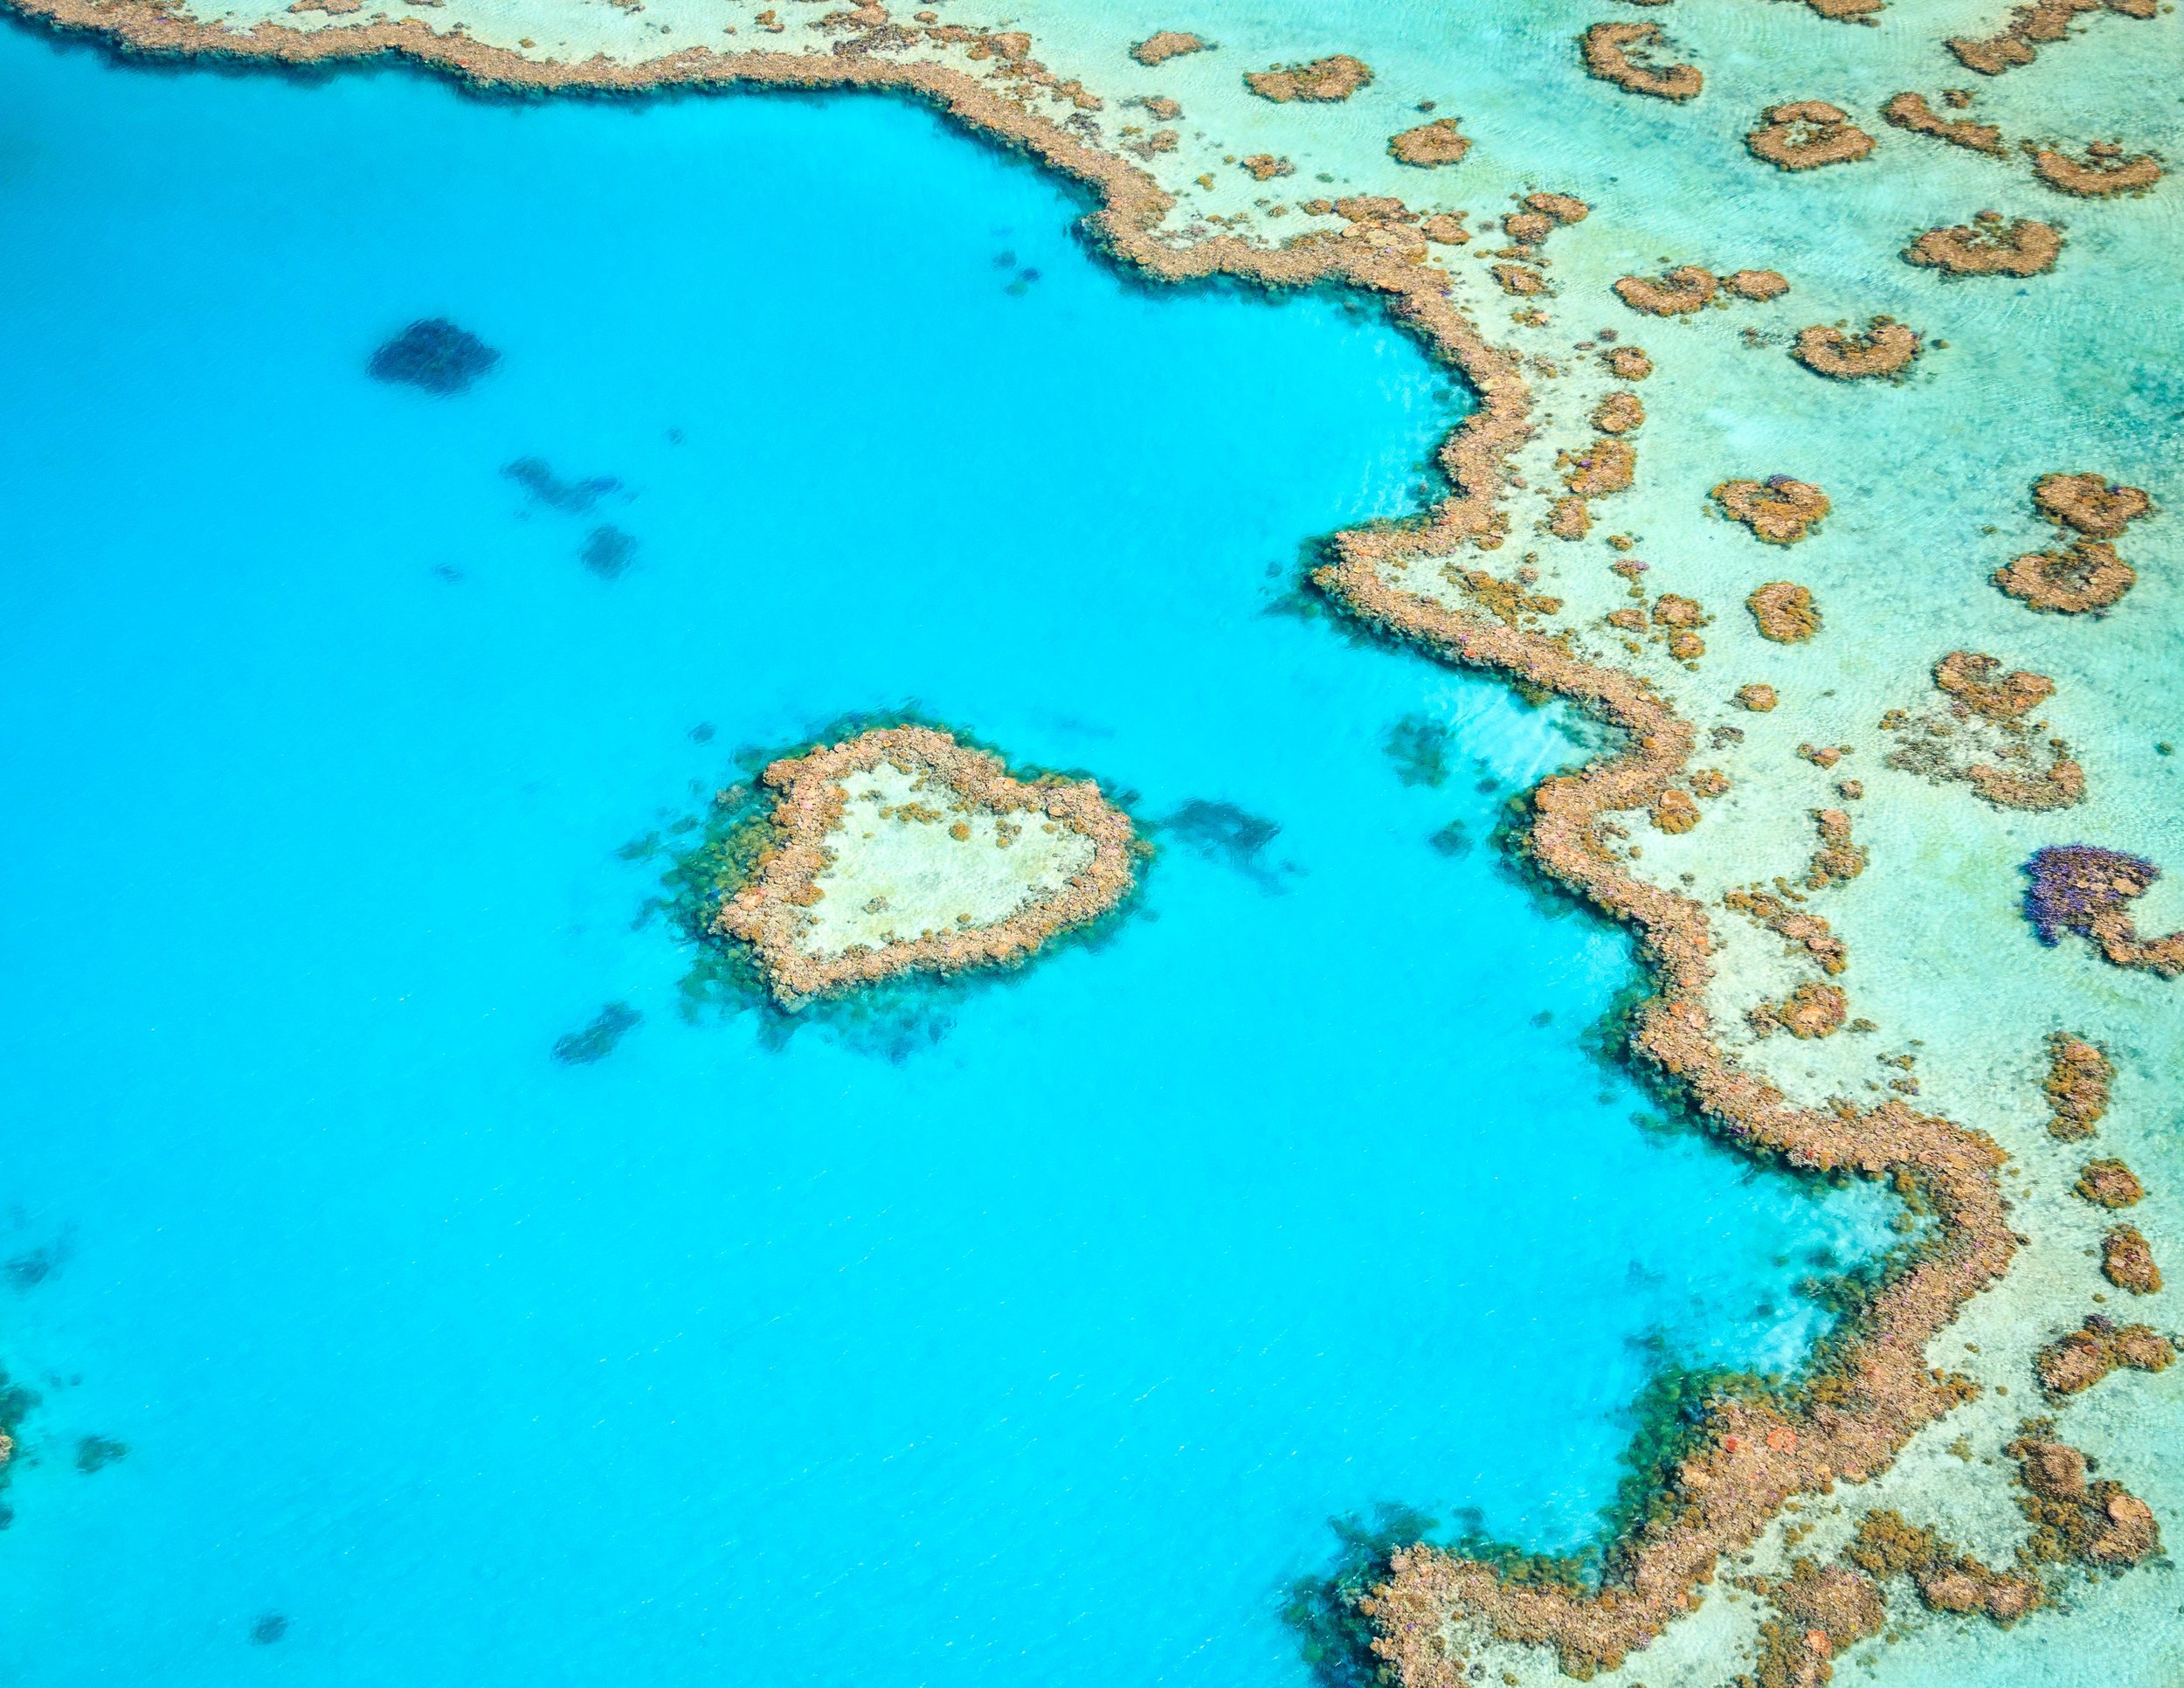 Heart Reef on the Great Barrier Reef, The Whitsundays